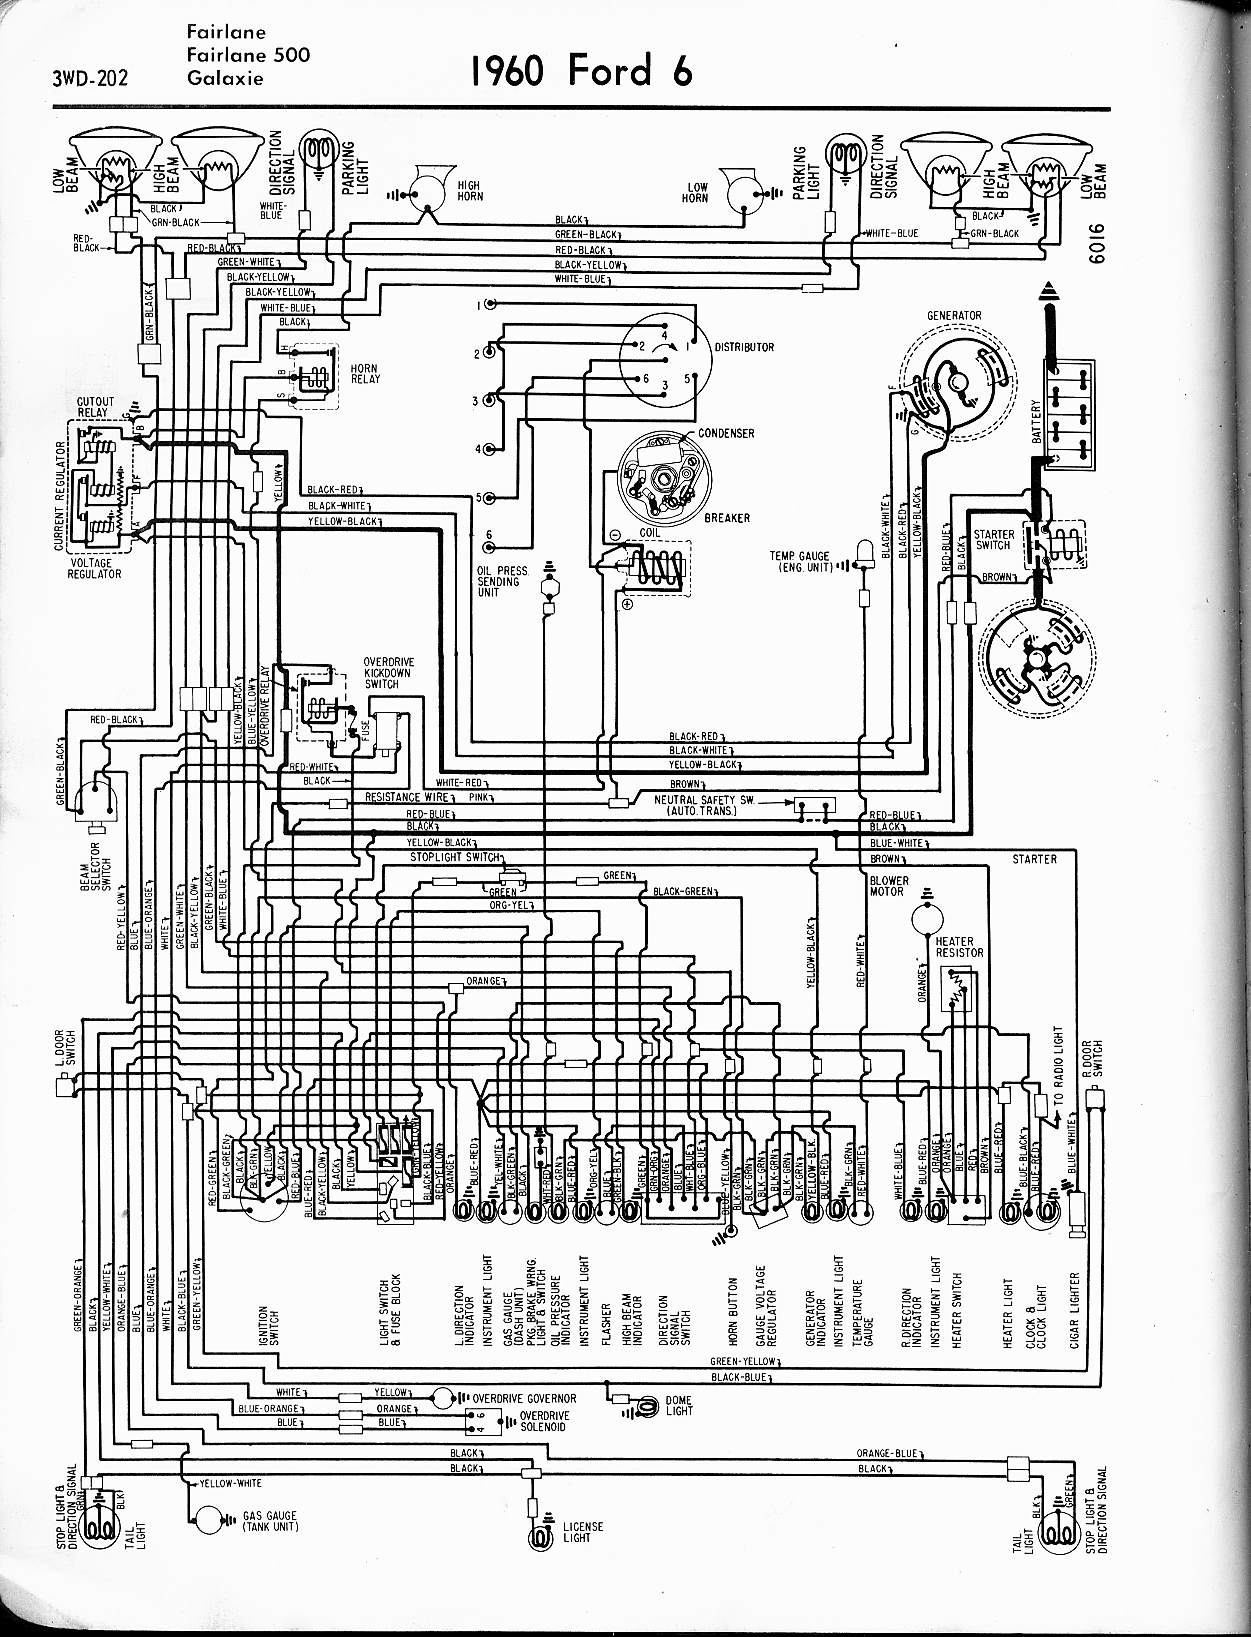 MWire5765 202 57 65 ford wiring diagrams